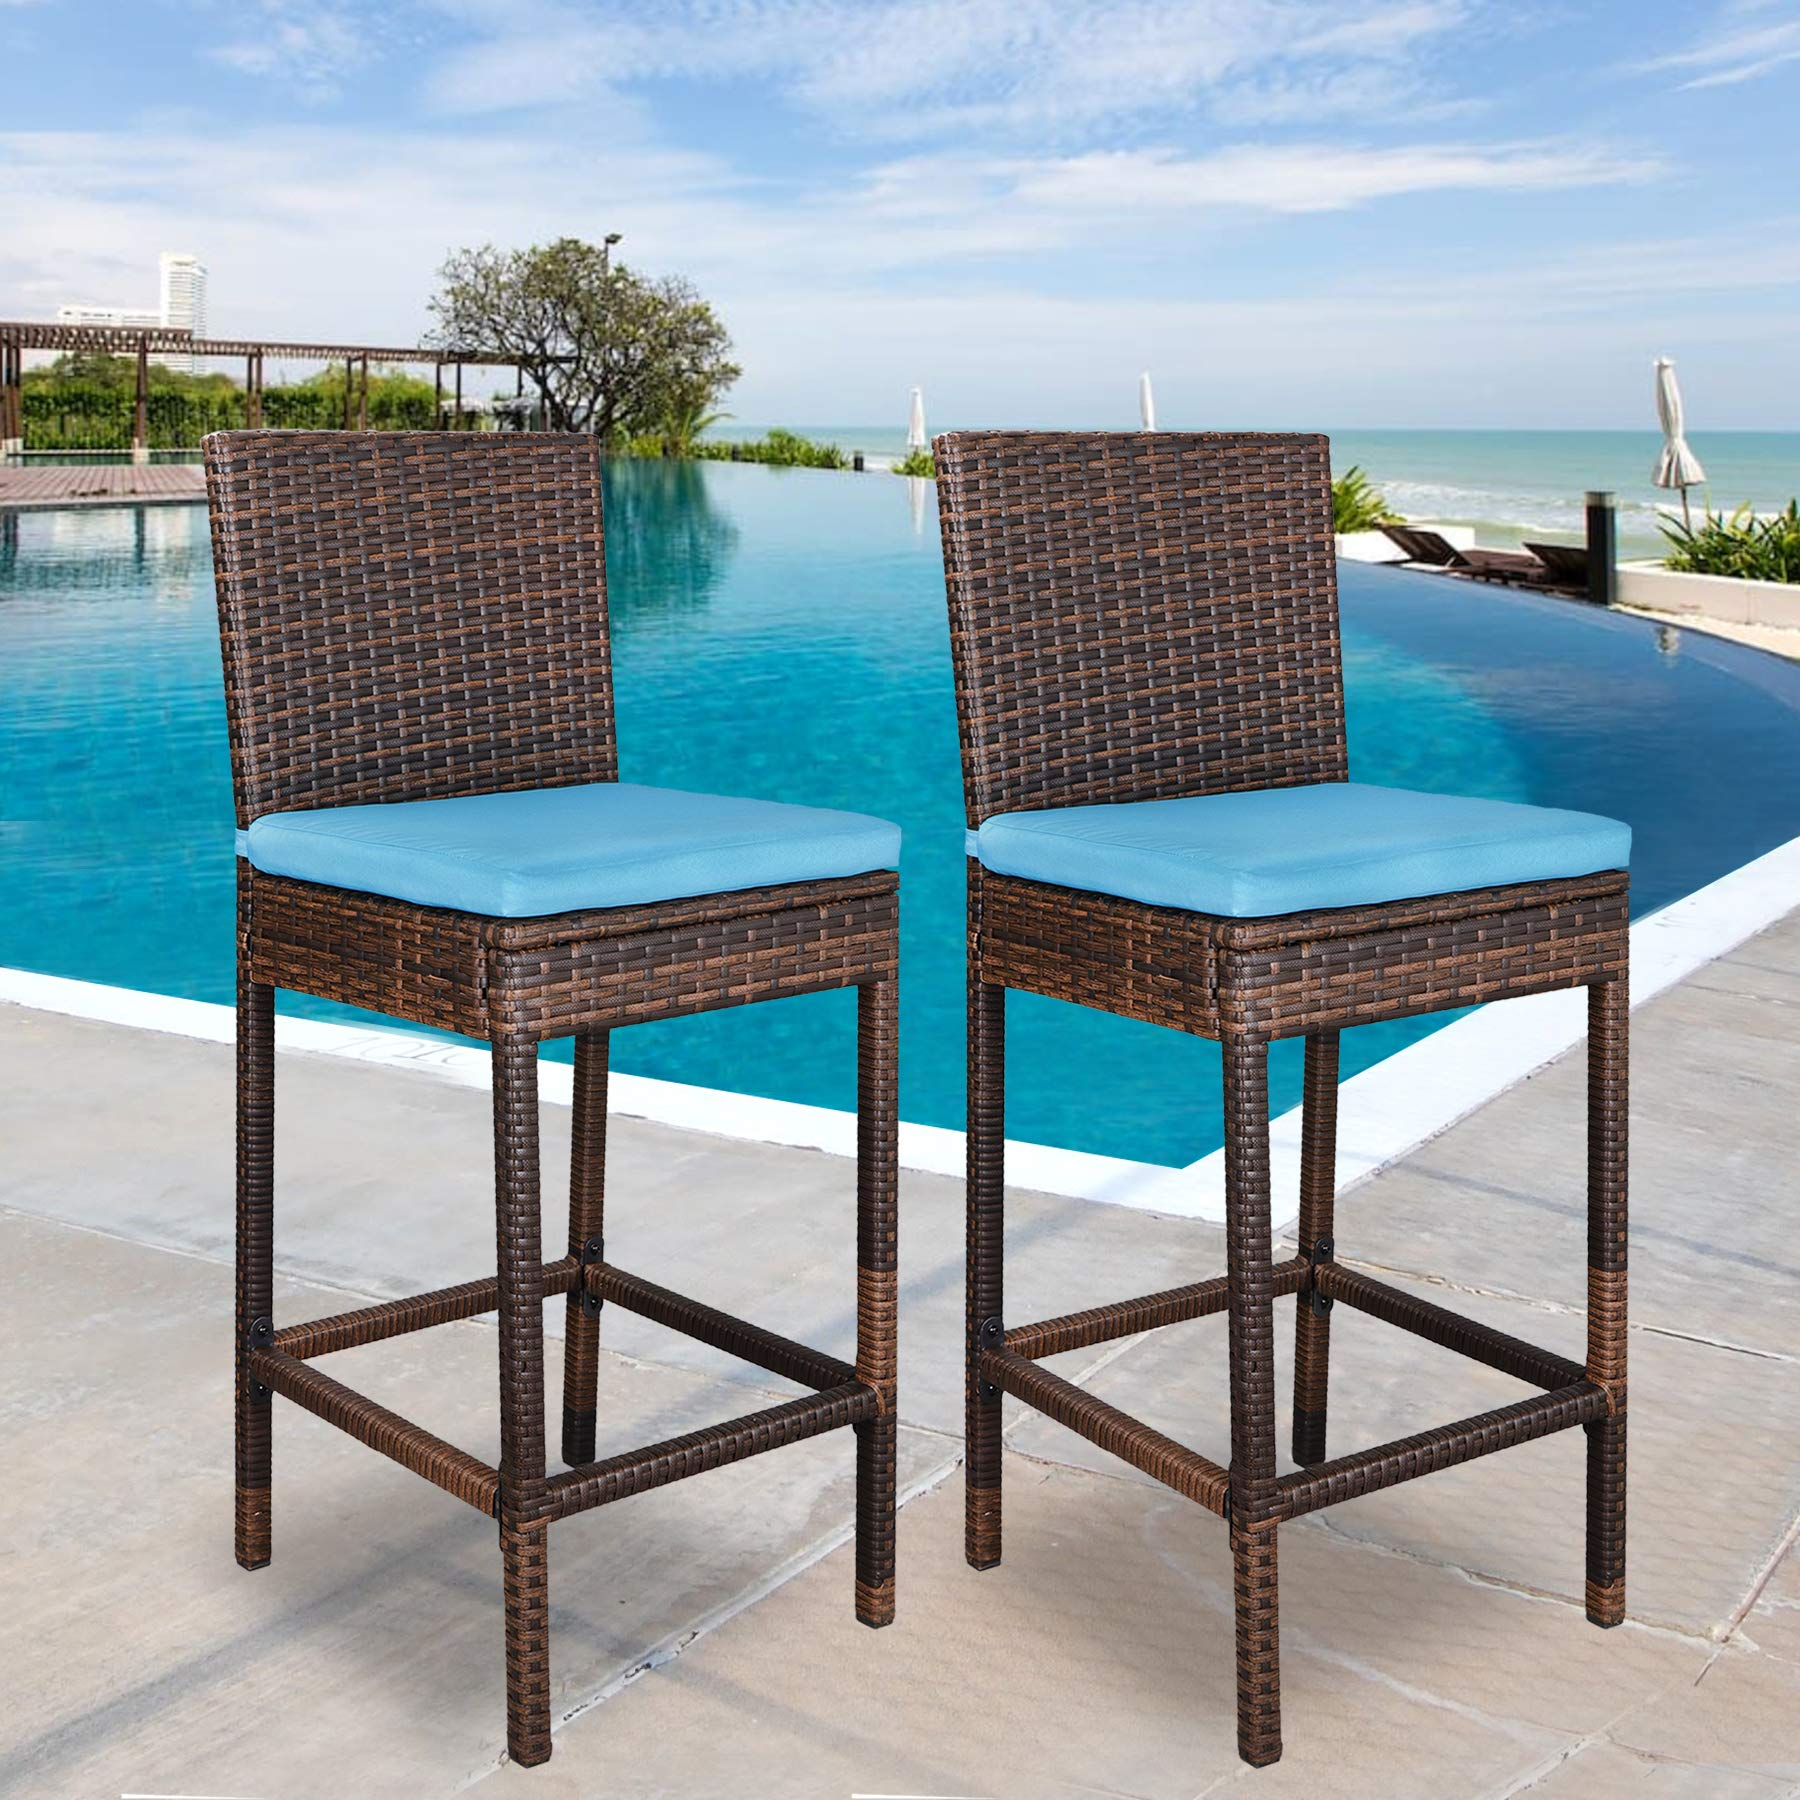 SUPER DEAL Outdoor Upgraded All Weather Wicker Bar Stools with Cushions, Espresso Blue (Set of 2) by SUPER DEAL